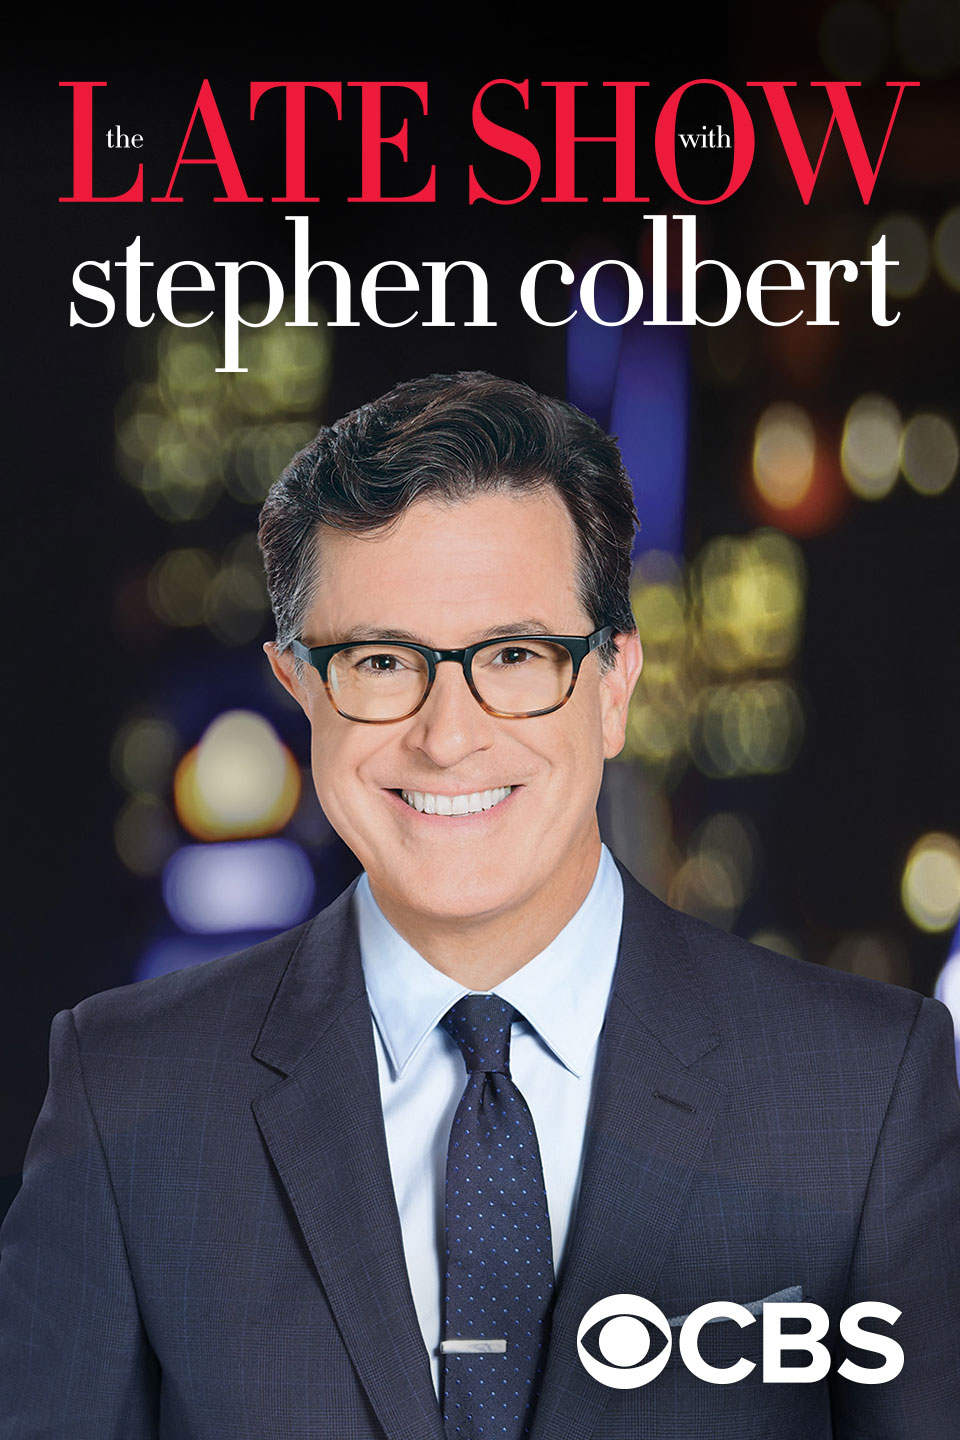 Late Show with Stephen Colbert - Season 7 Episode 12 - Jason Segel, Black Pumas